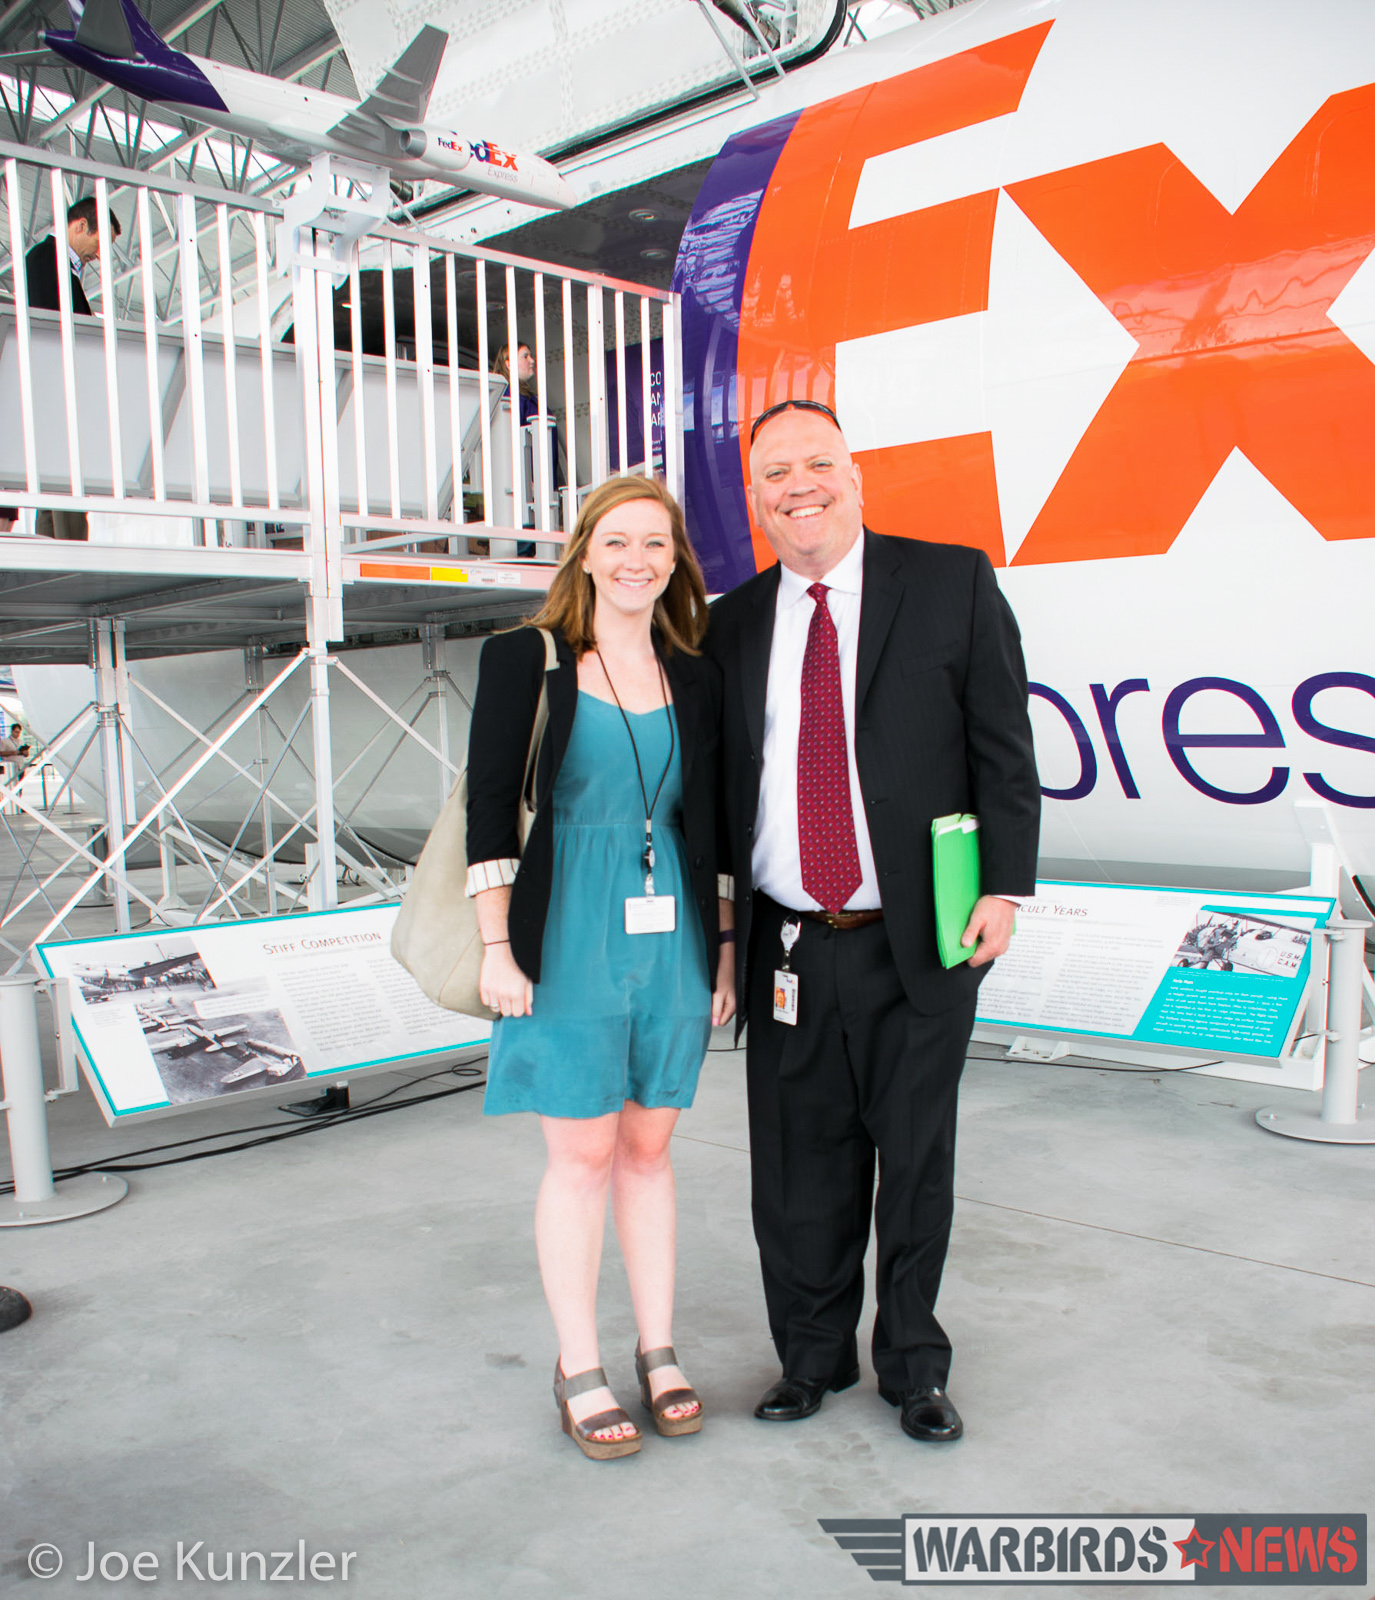 Mary K. Patterson and William M. Bielskis of FedEx Communications in front of their exhibit. (photo by Joe Kunzler)